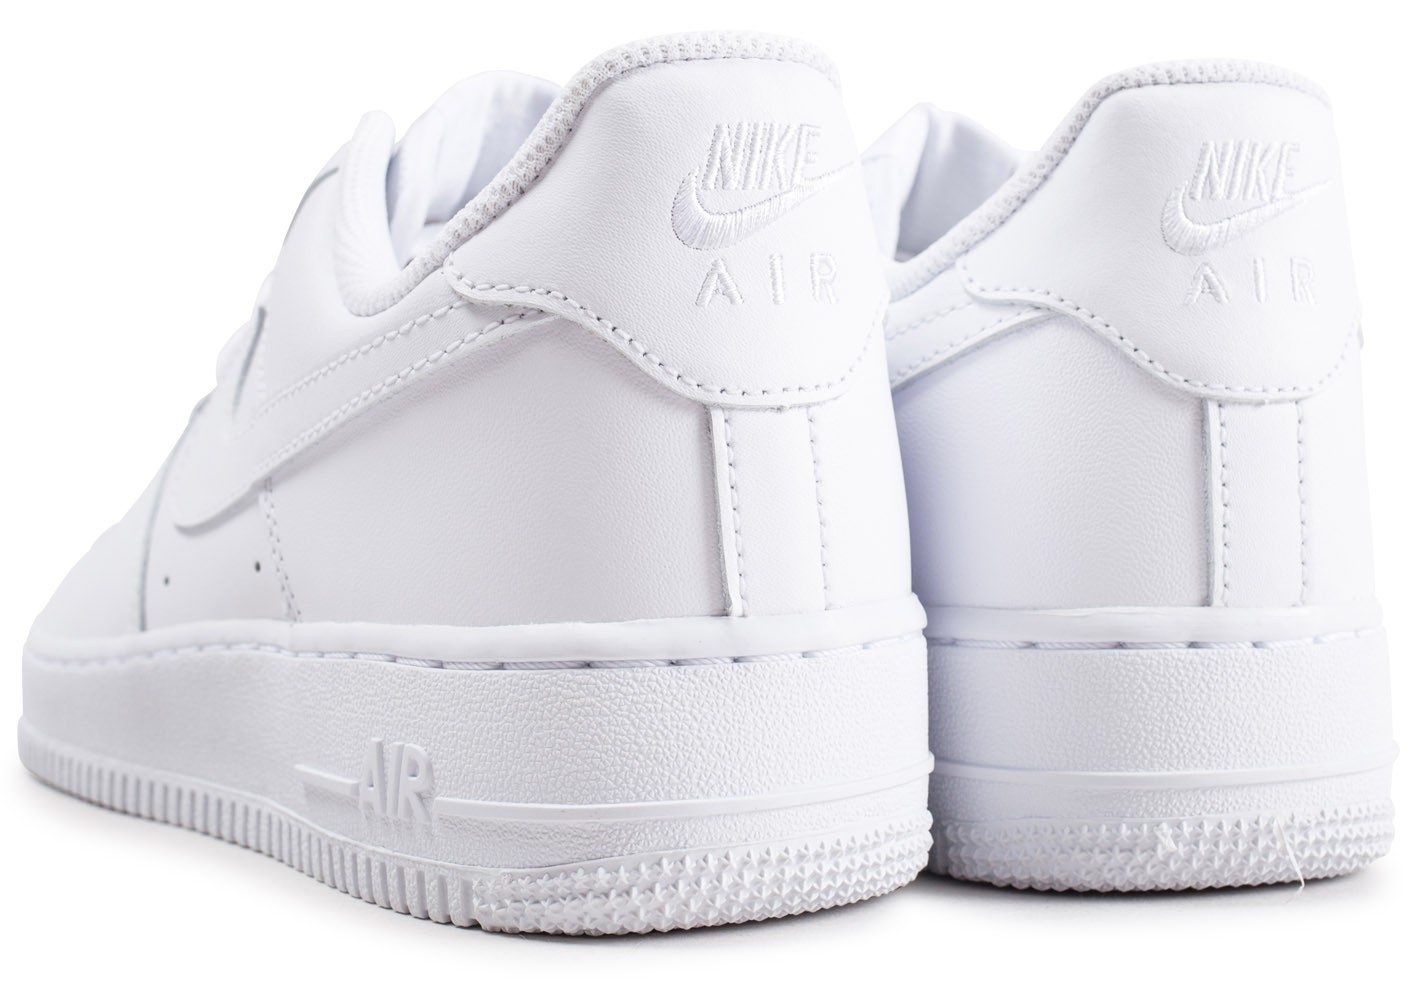 mode designer 5c80a 8eef9 Nike Air Force 1 Blanche - Chaussures Baskets homme - Chausport